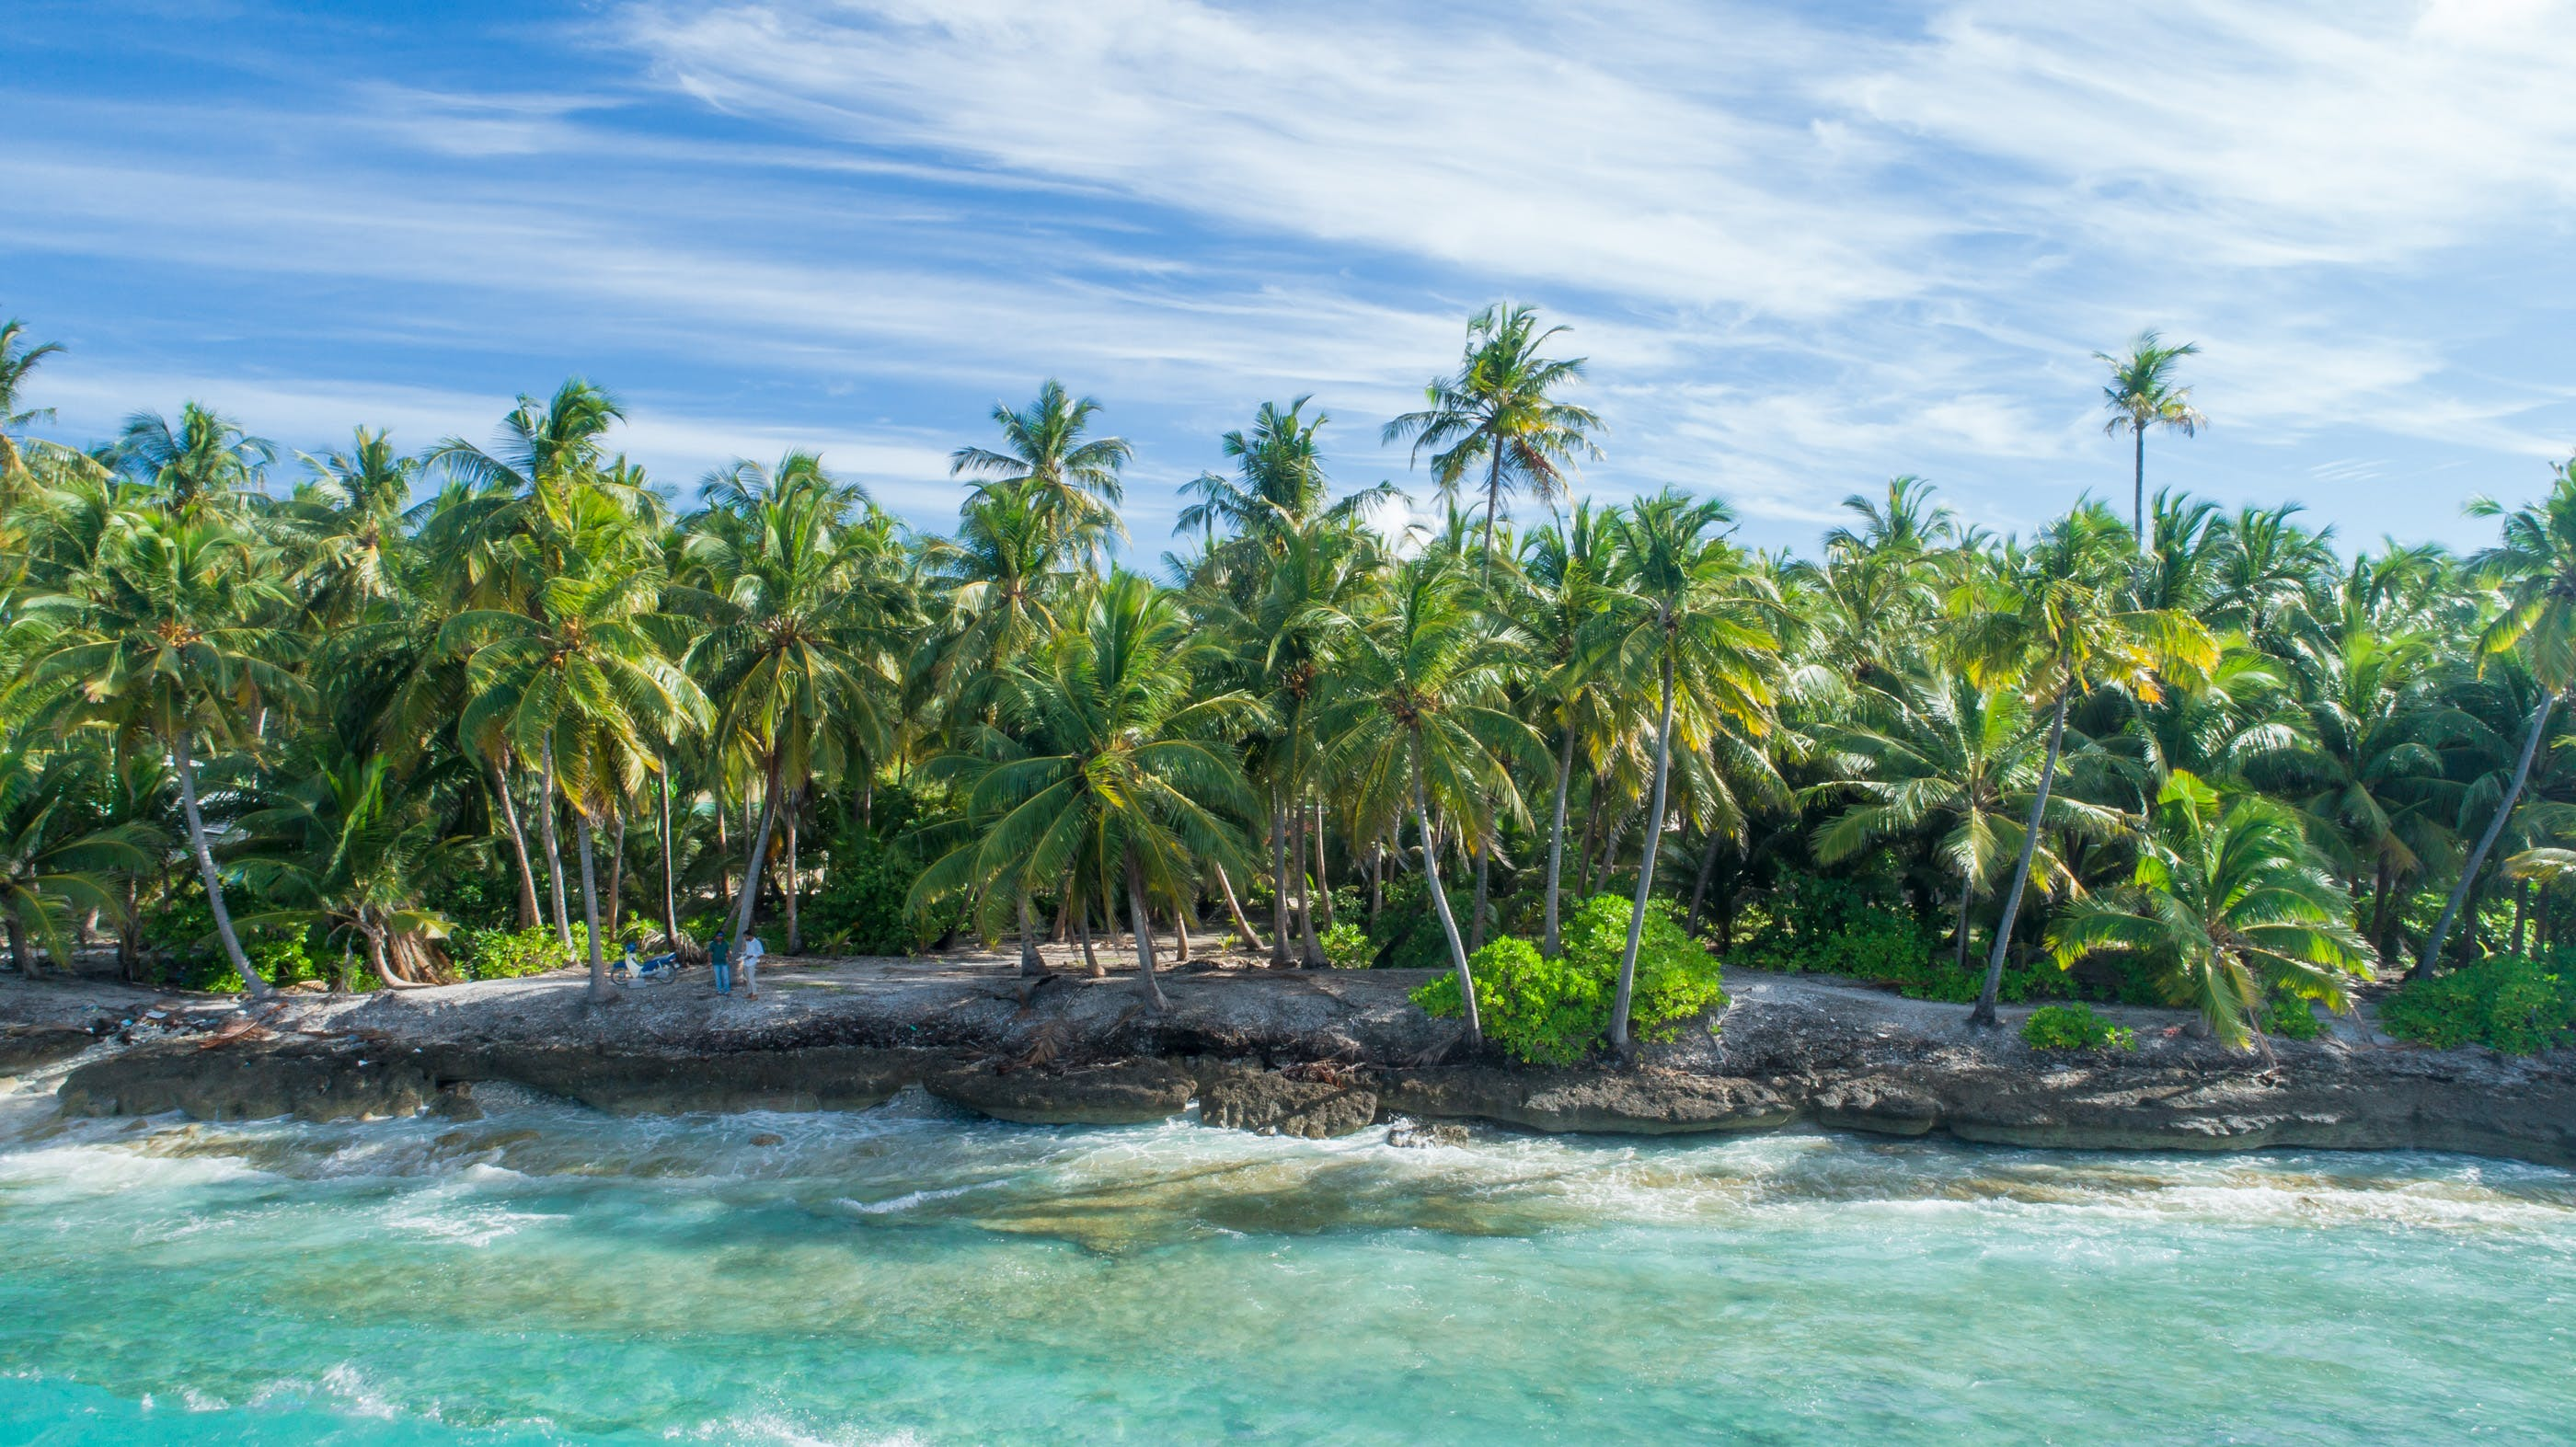 Coconut Forest Near Water